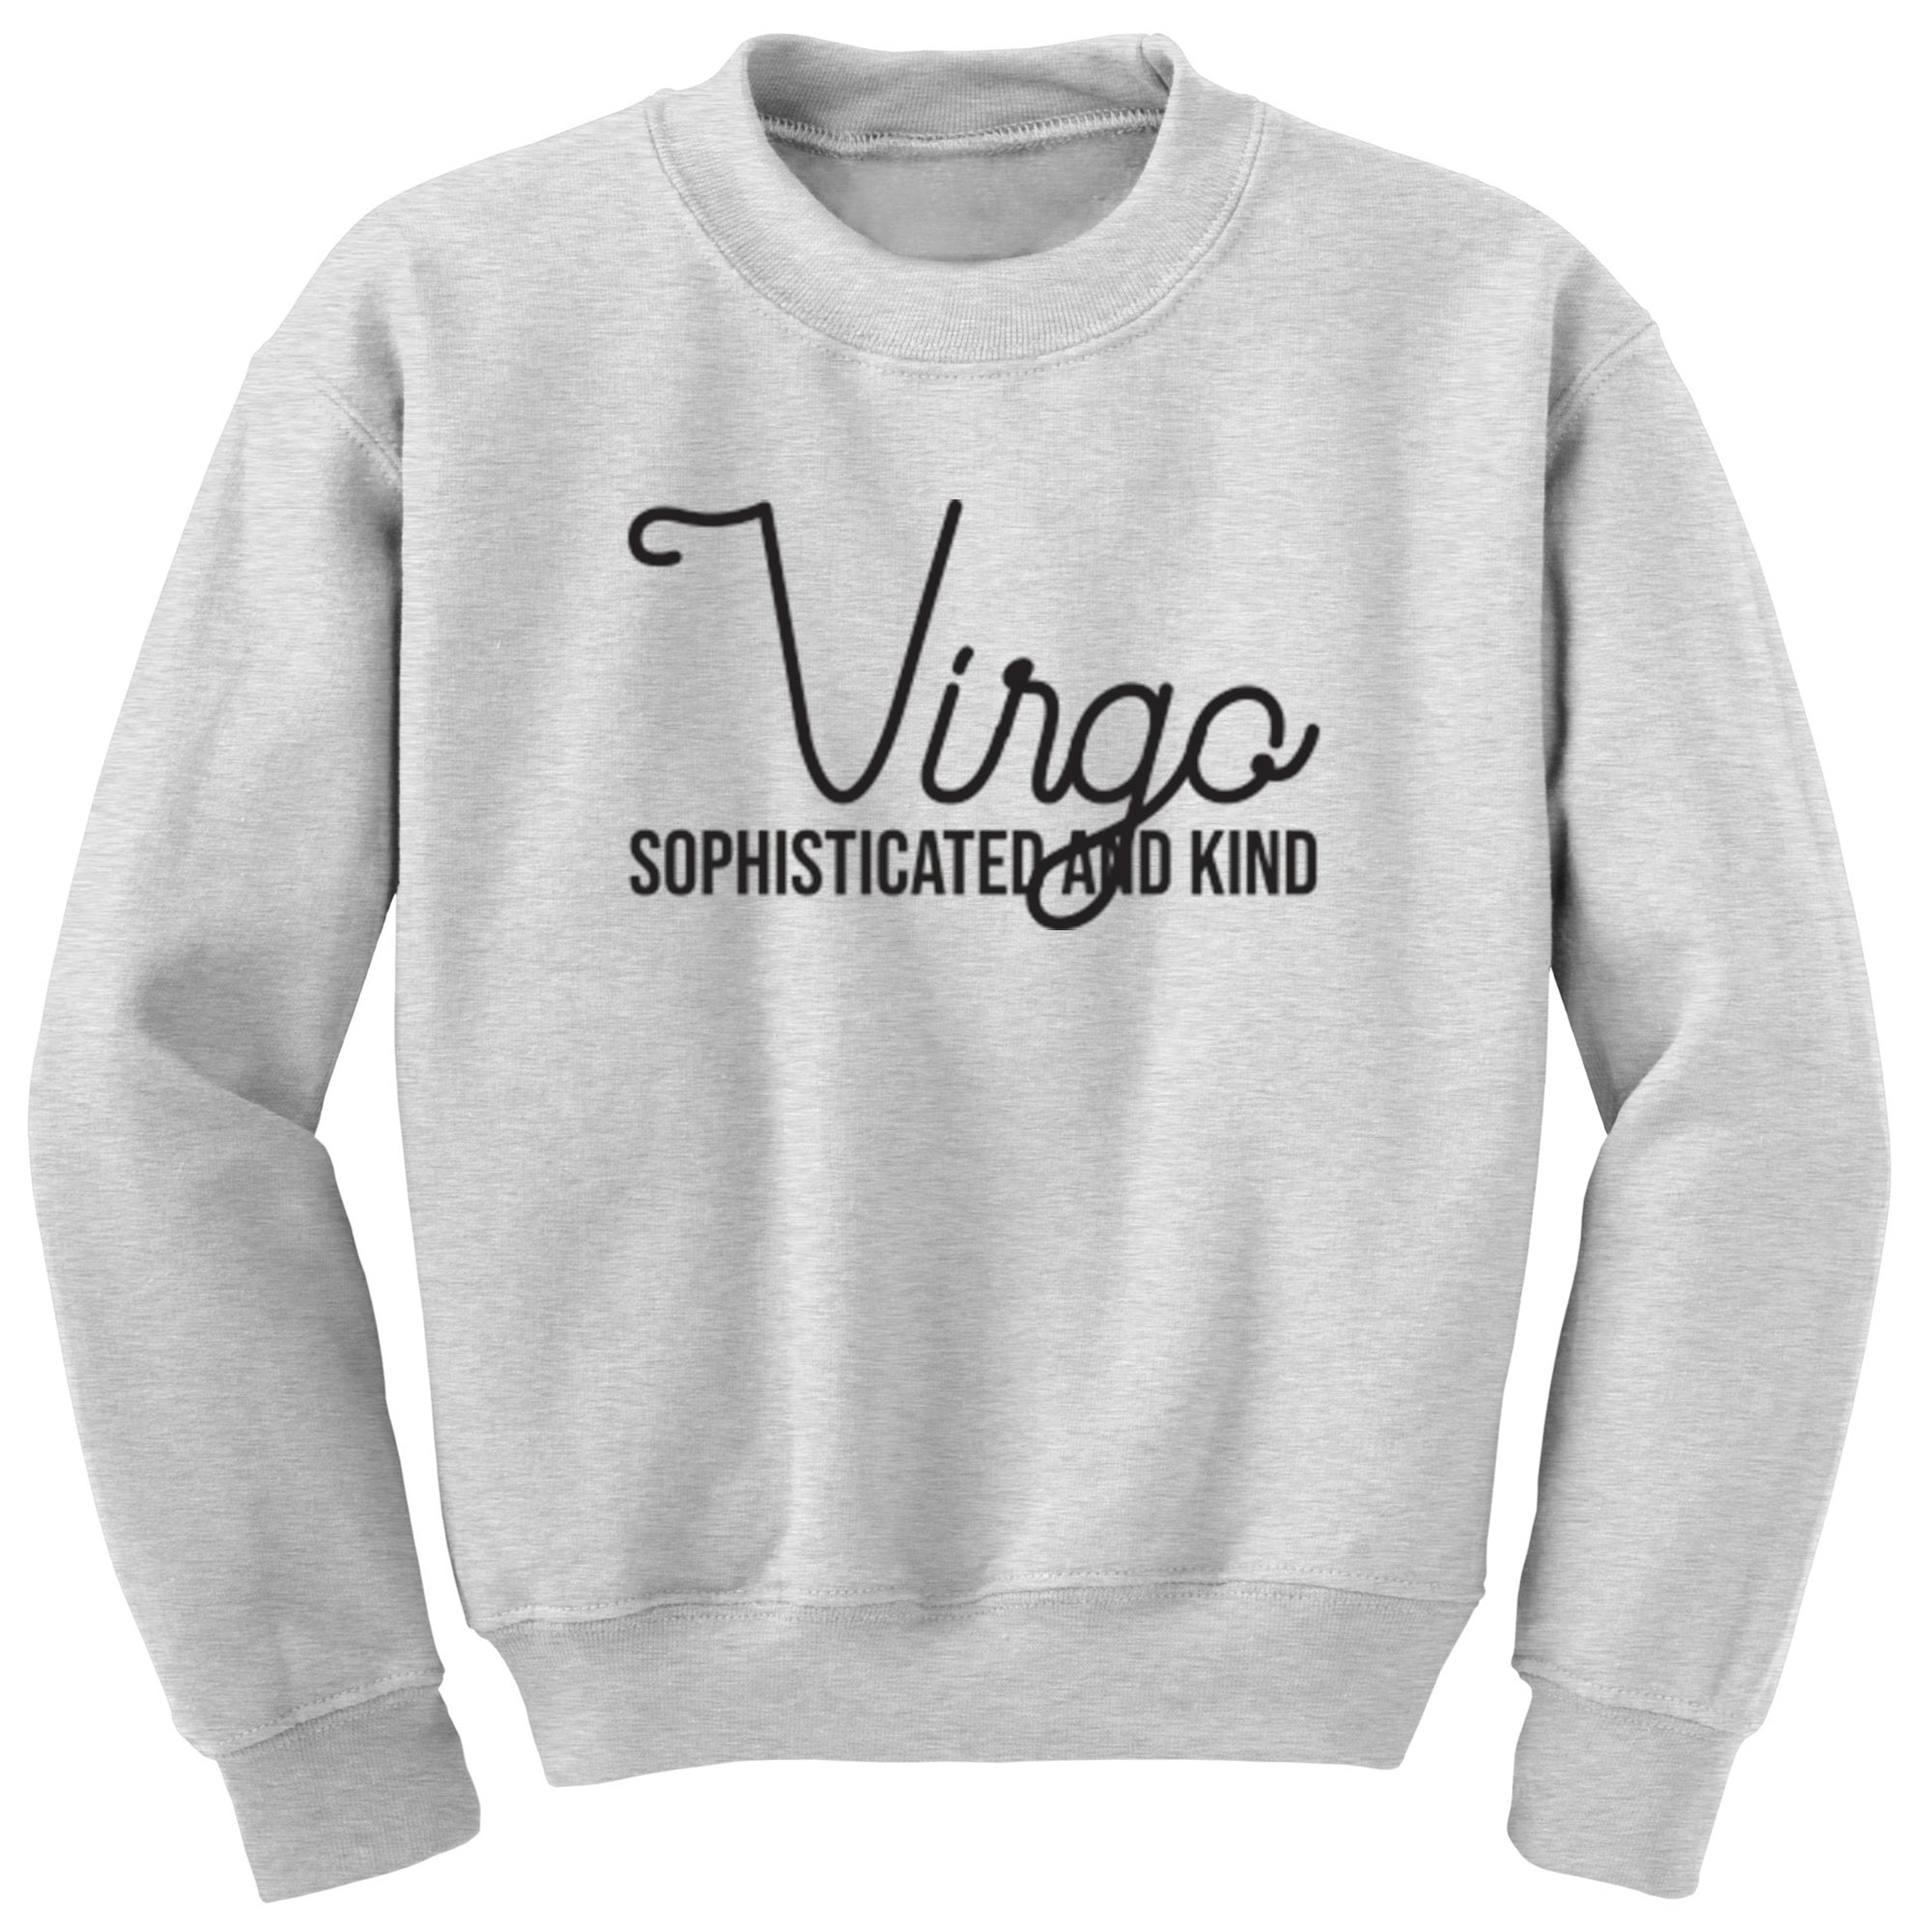 Virgo, Sophisticated And Kind Childrens Ages 3/4-12/14 Unisex Jumper S0441 - Illustrated Identity Ltd.